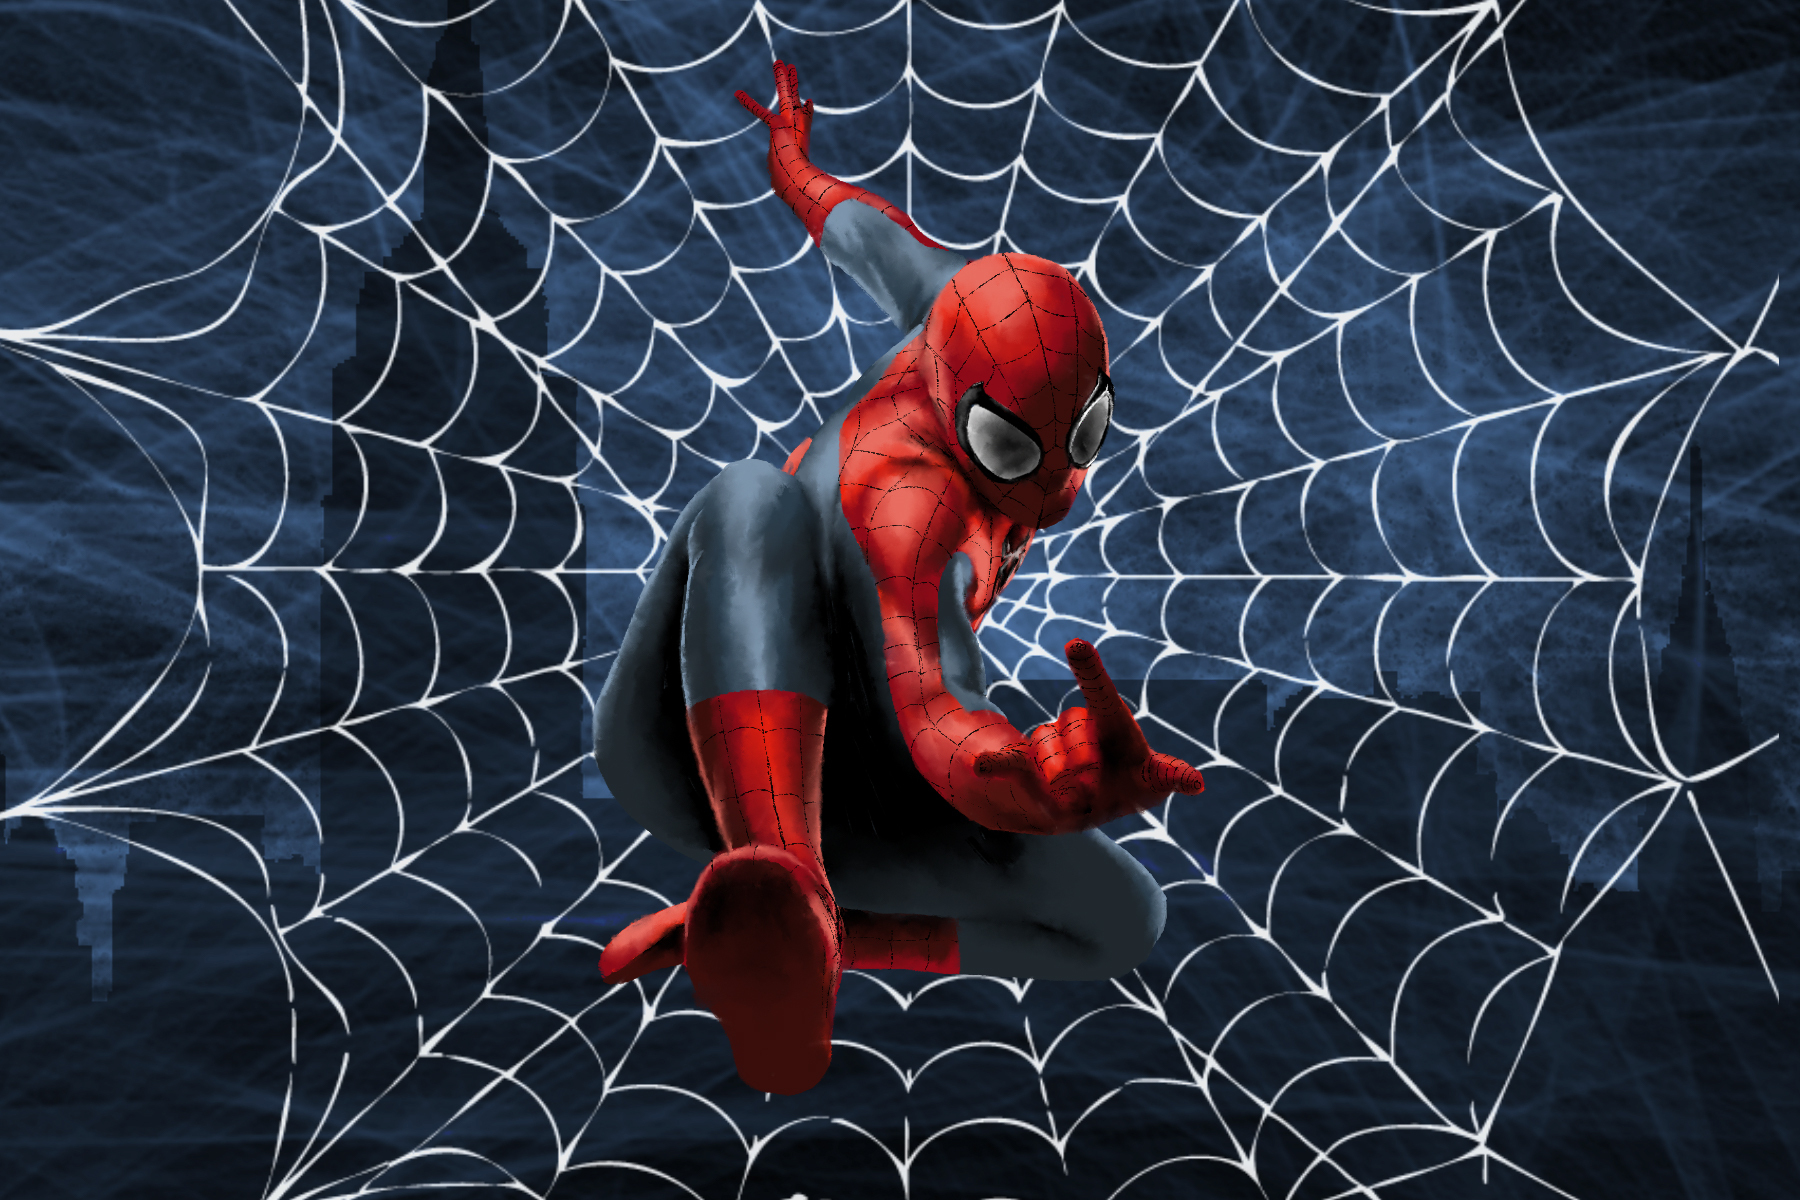 An illustration of Spider-Man for an article on the Sam Raimi trilogy.